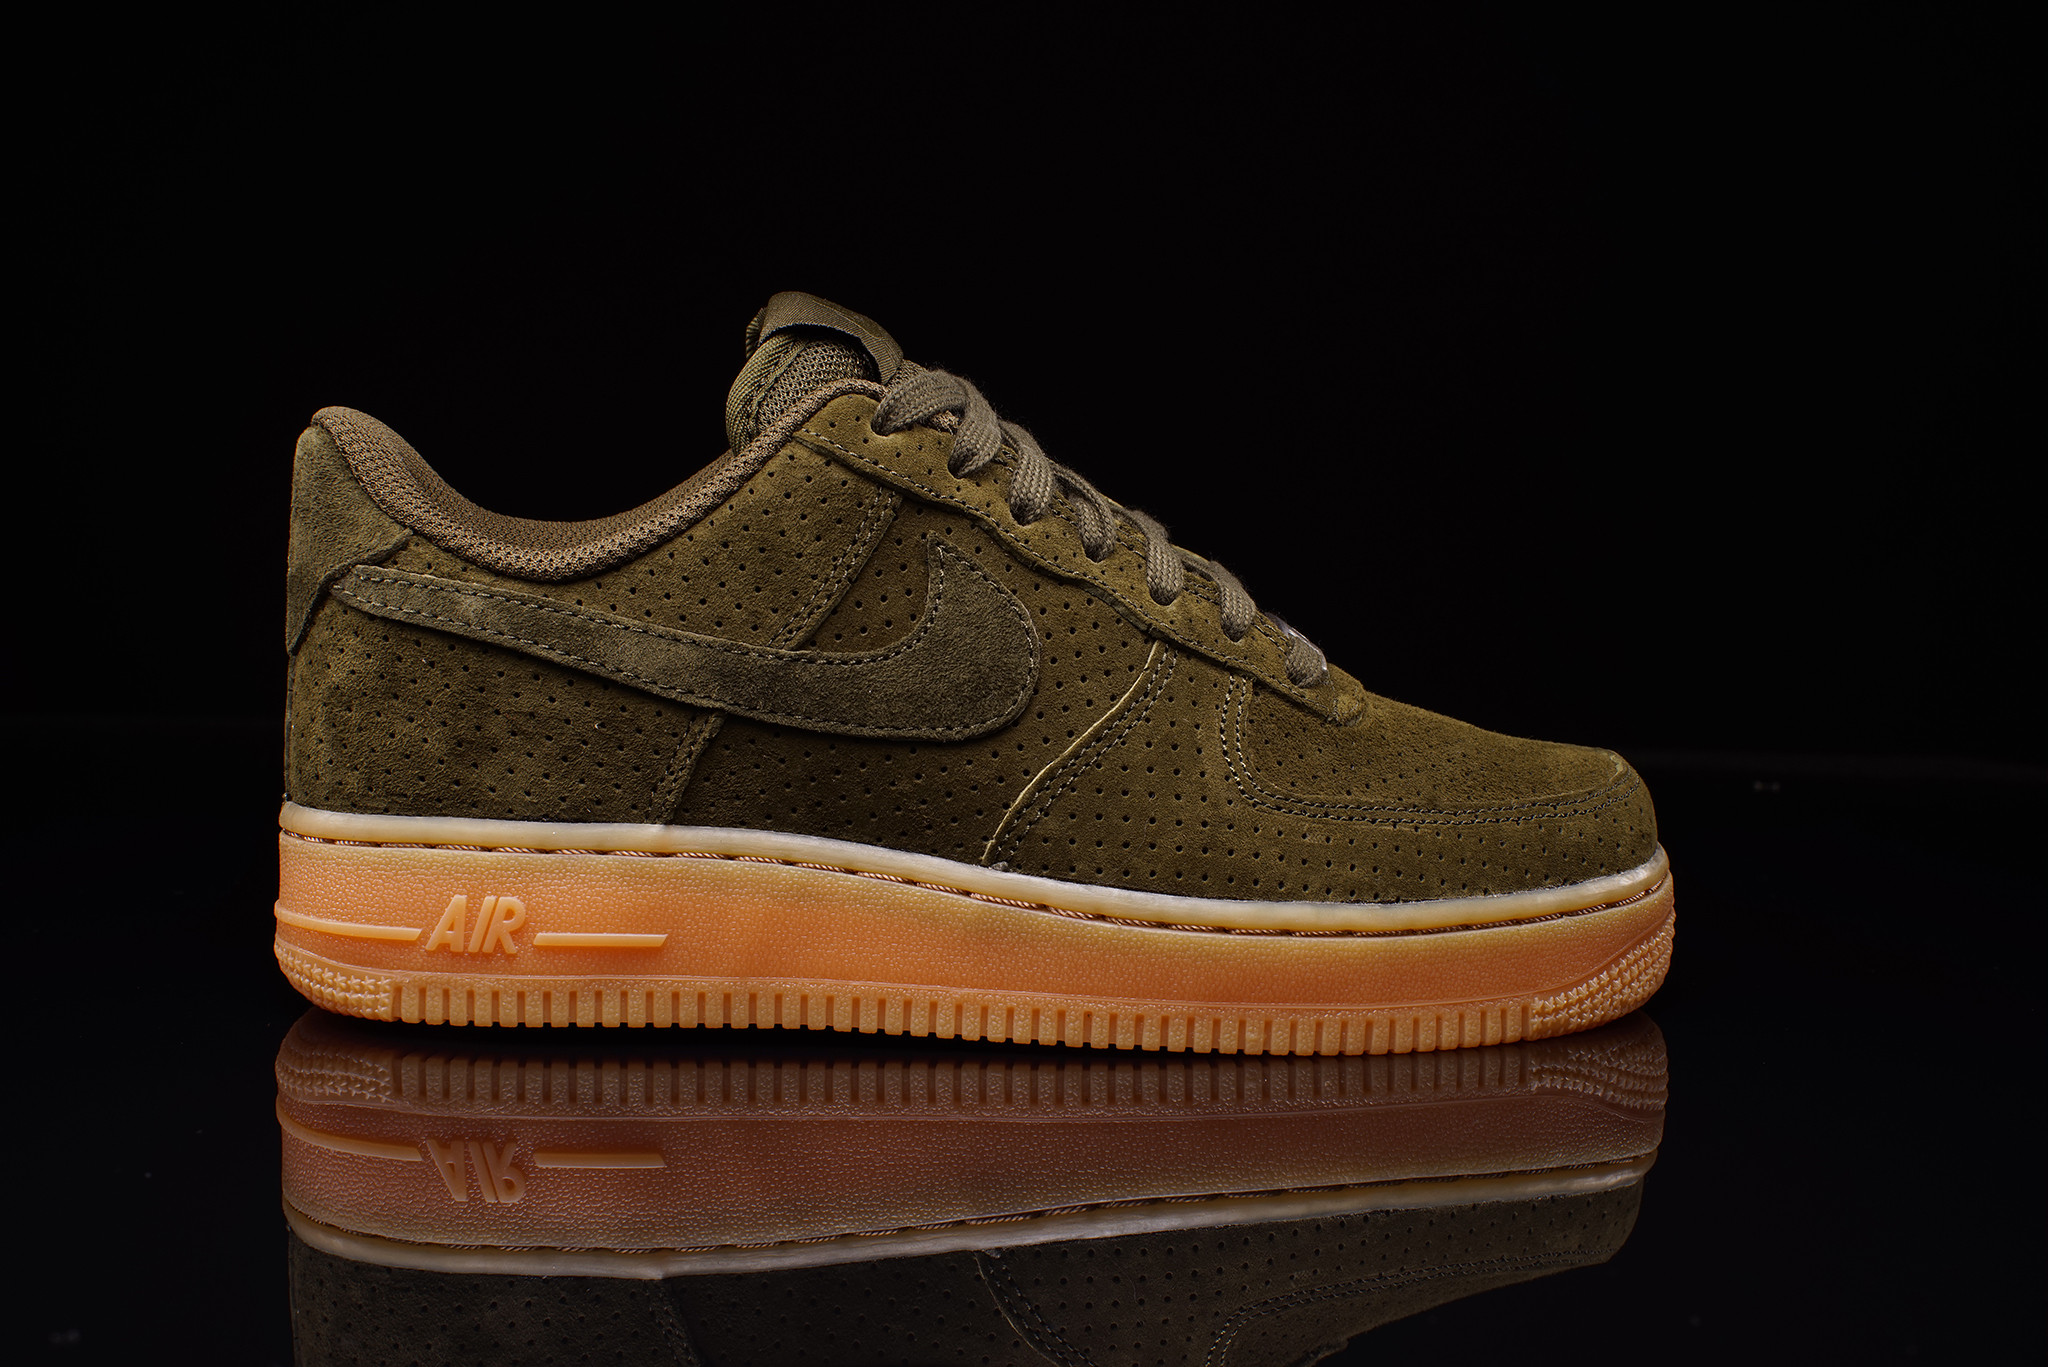 nike air force 1 suede dark loden gum wmns. Black Bedroom Furniture Sets. Home Design Ideas